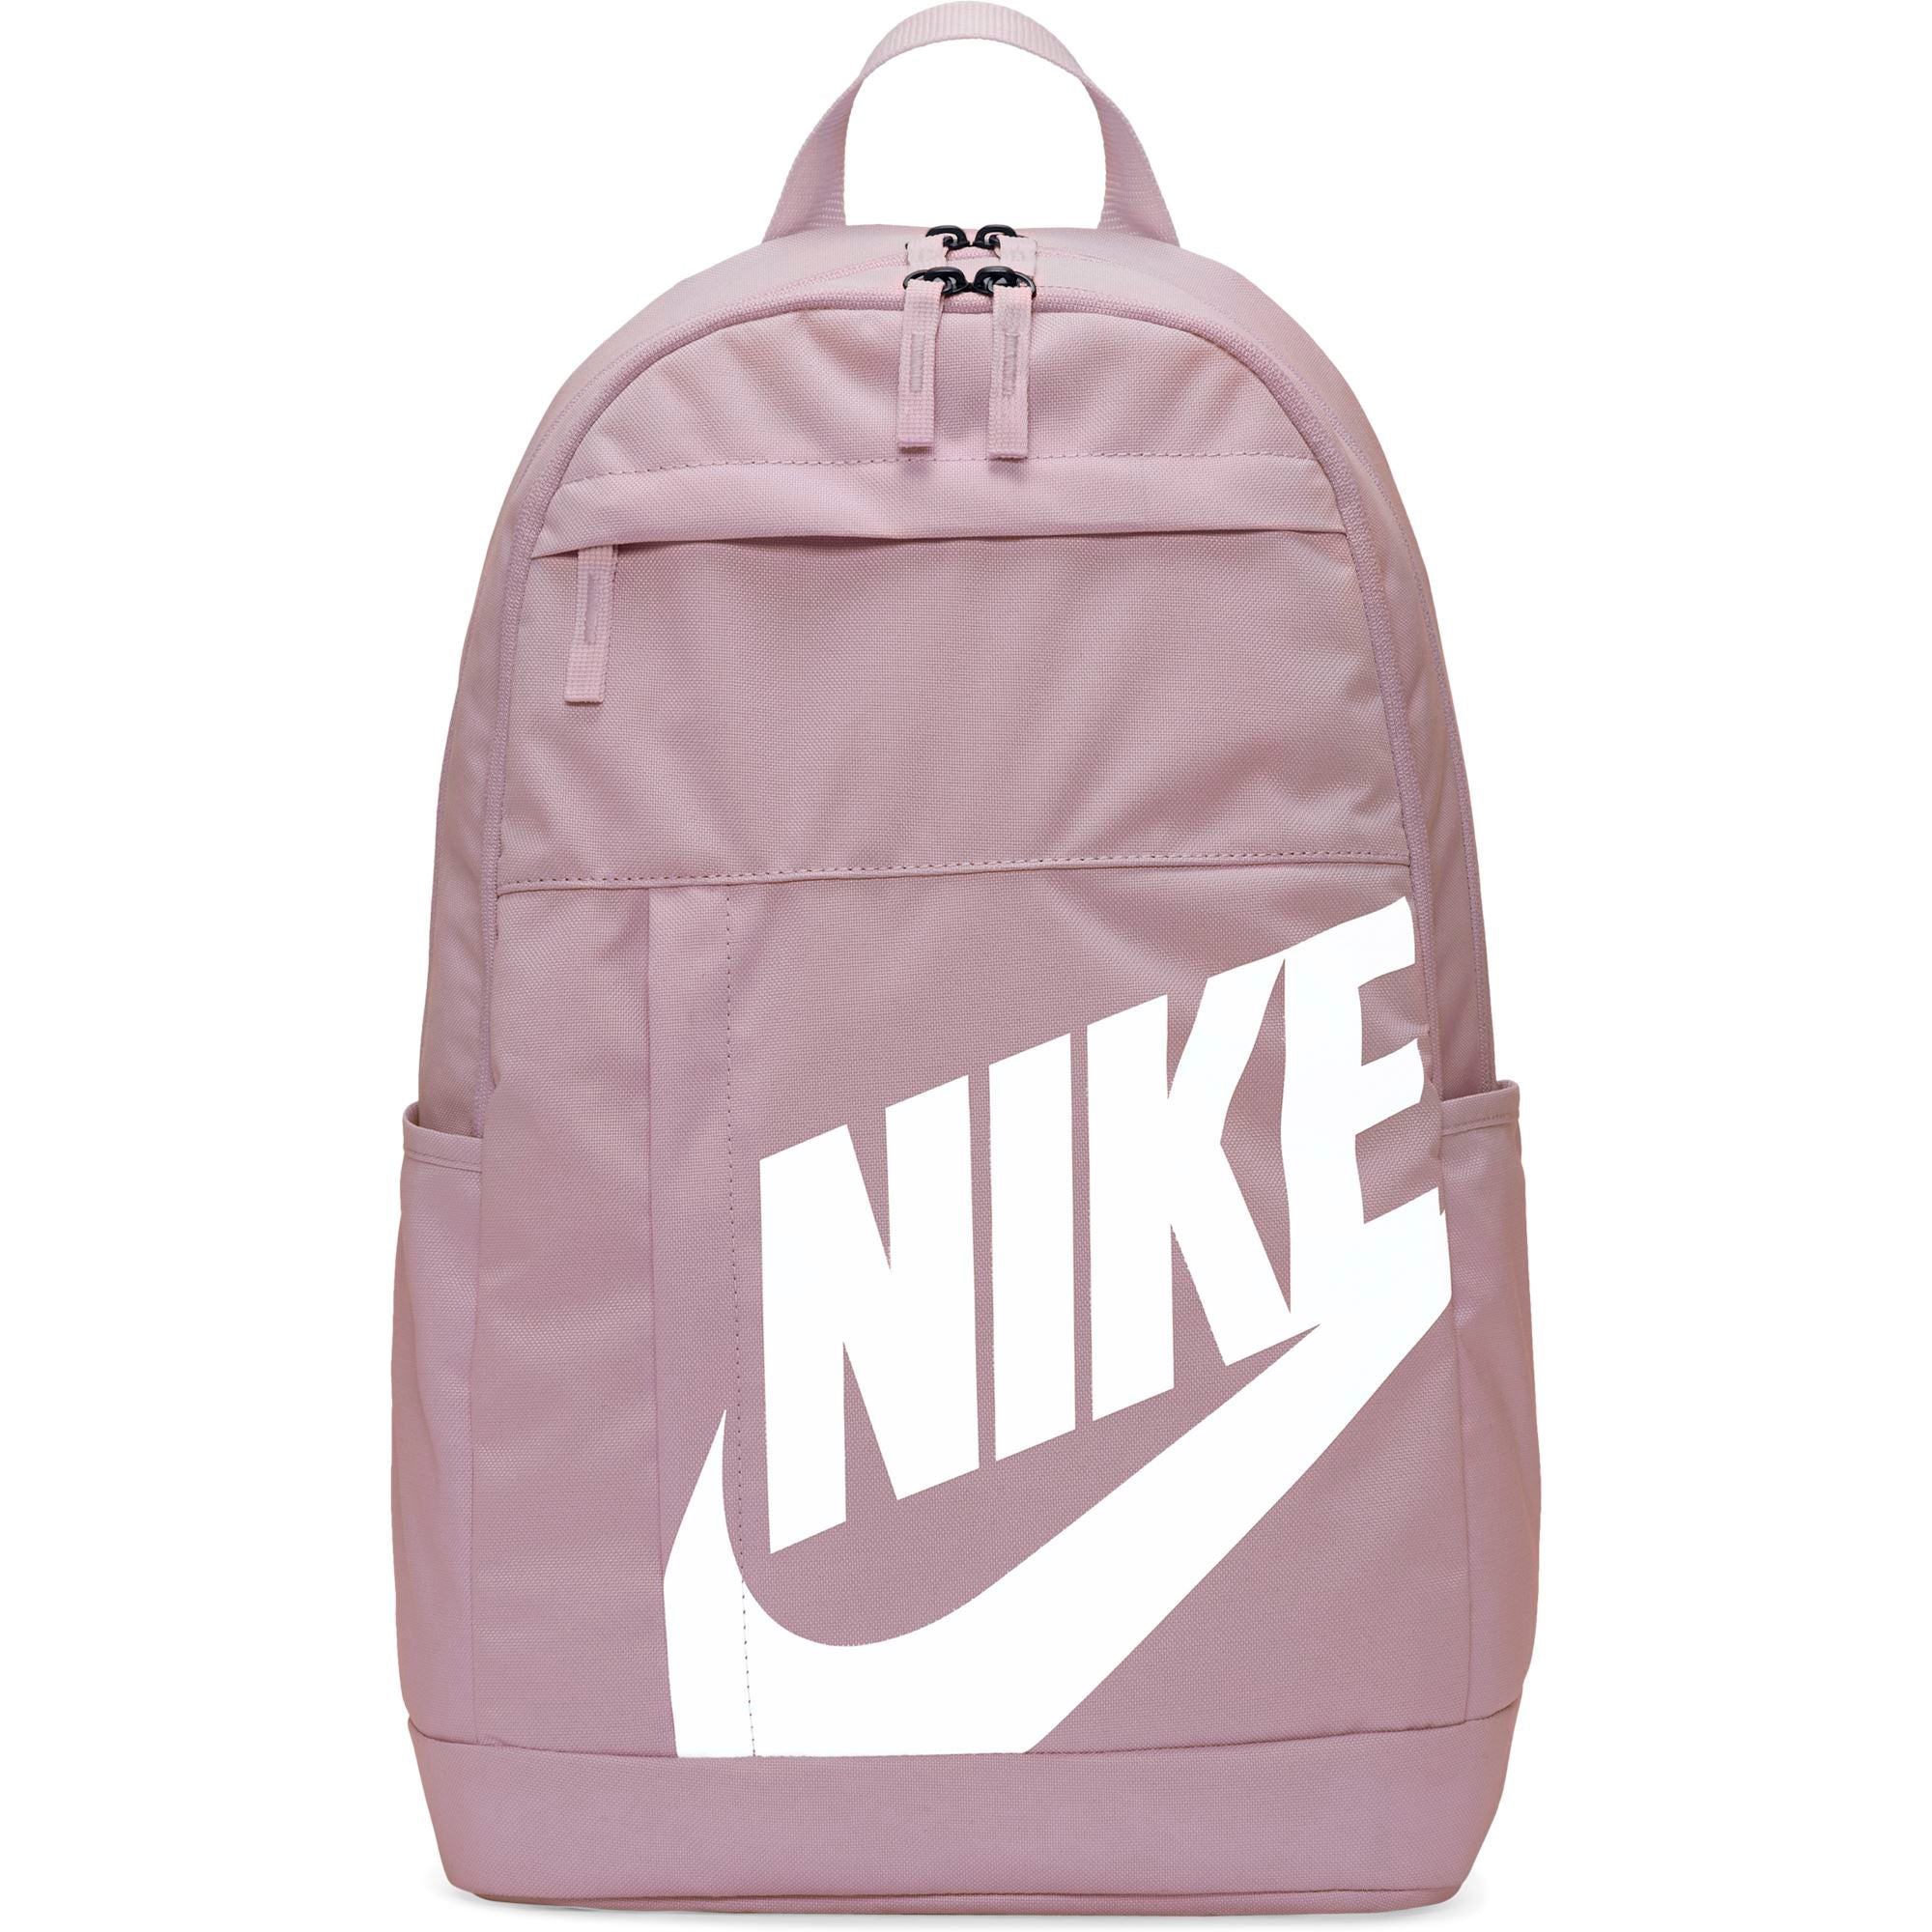 Nike Sportswear Elemental Backpack - Plum Chalk/Black SP-Accessories-Bags Nike